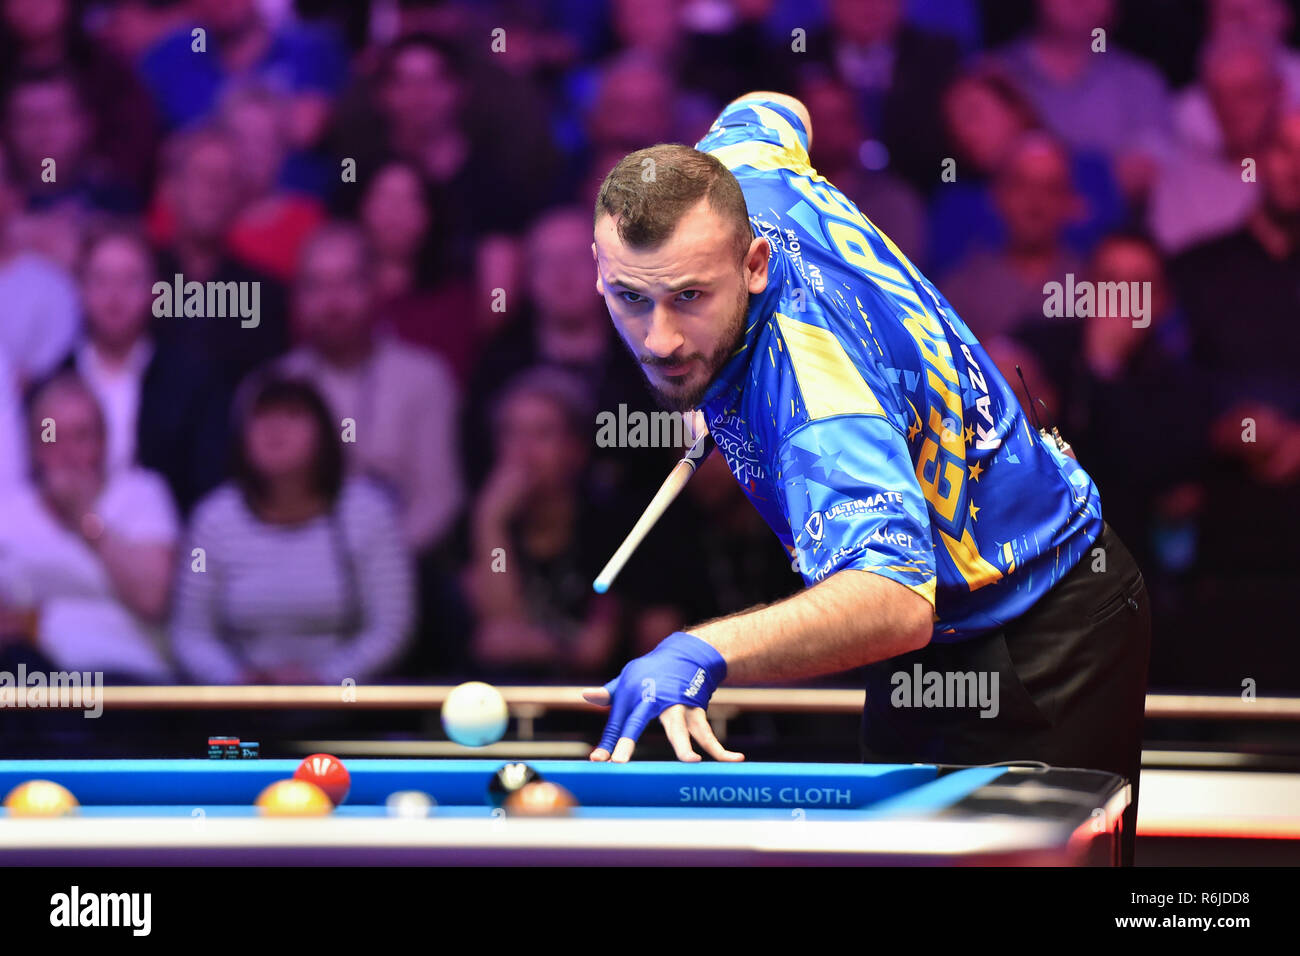 London, UK. 05th Dec, 2018. Alex Kazakis of Greece/Niels Feijen of The Netherlands during The Partypoker Mosconi Cup 2018: on Day 2 event - Niels Feijen/Alex Kazakis (EUR) v Skyler Woodward/Shane van Boening at Alexandra Palace on Wednesday, 05 December 2018. LONDON, ENGLAND. (Editorial use only, license required for commercial use. No use in betting, games or a single club/league/player publications.) Credit: Taka G Wu/Alamy News Credit: Taka Wu/Alamy Live News - Stock Image